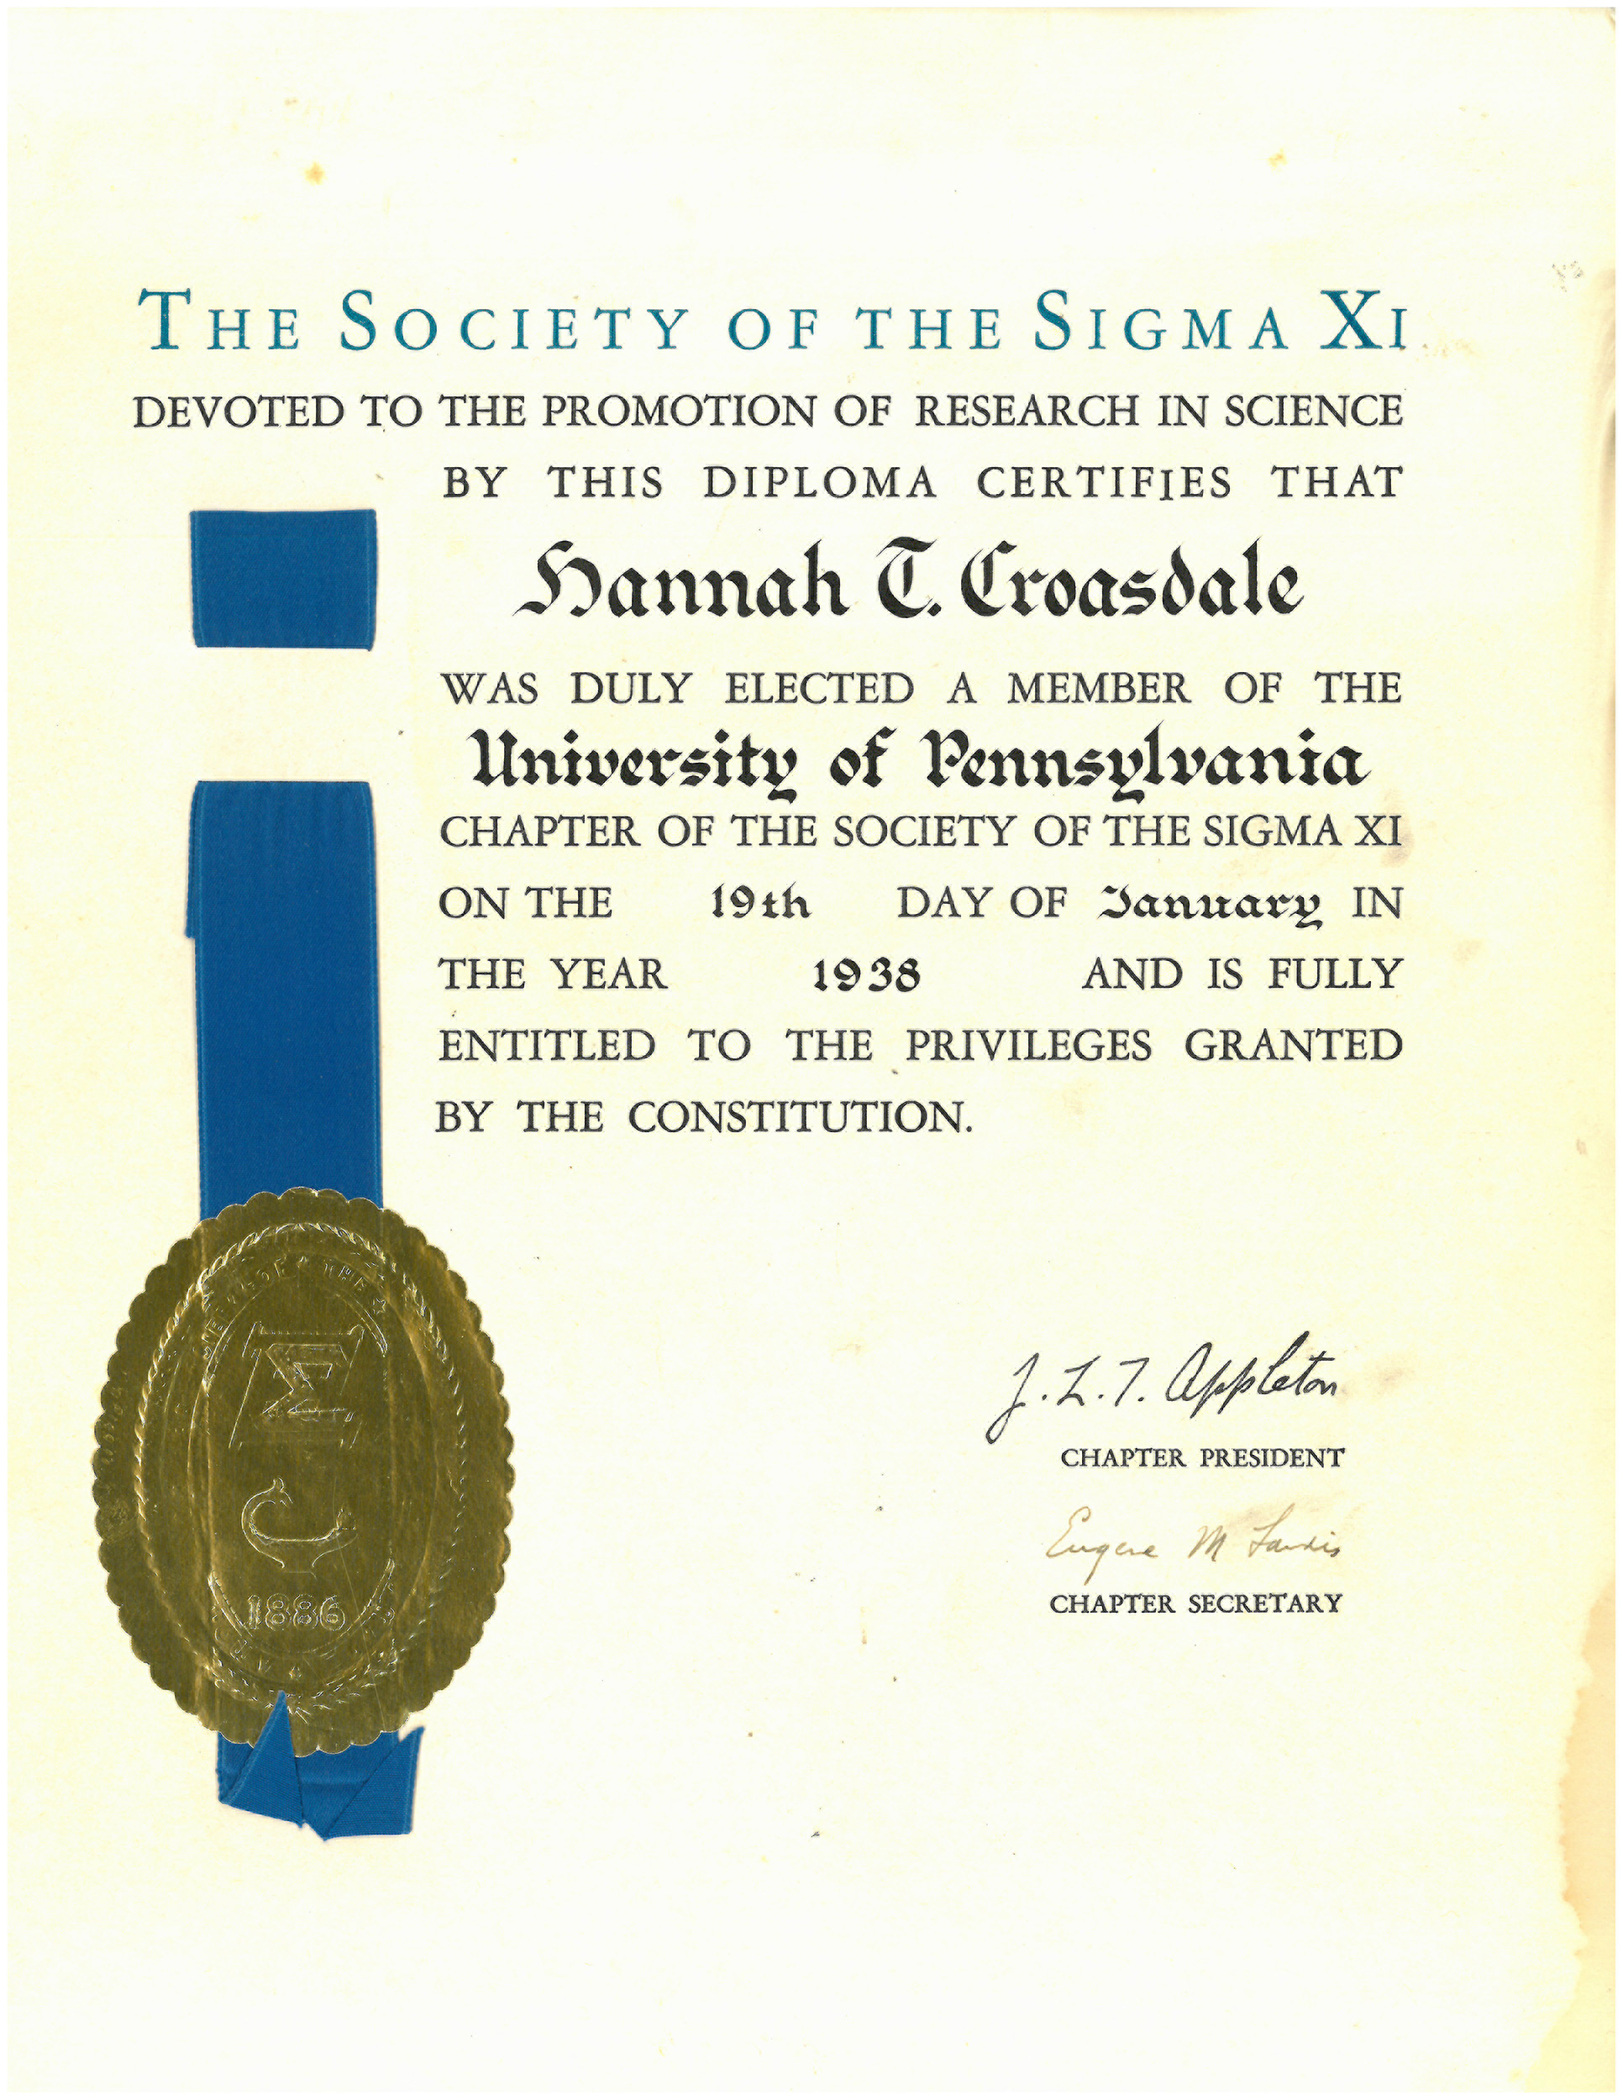 A certificate acknowledging Croasdale's admittance to the University of Pennsylvania chapter of the Society of the Sigma Xi. Her Ph.D. thesis, The Freshwater Algae of Woods Hole, Mass, was awarded the Sigma Xi Prize.